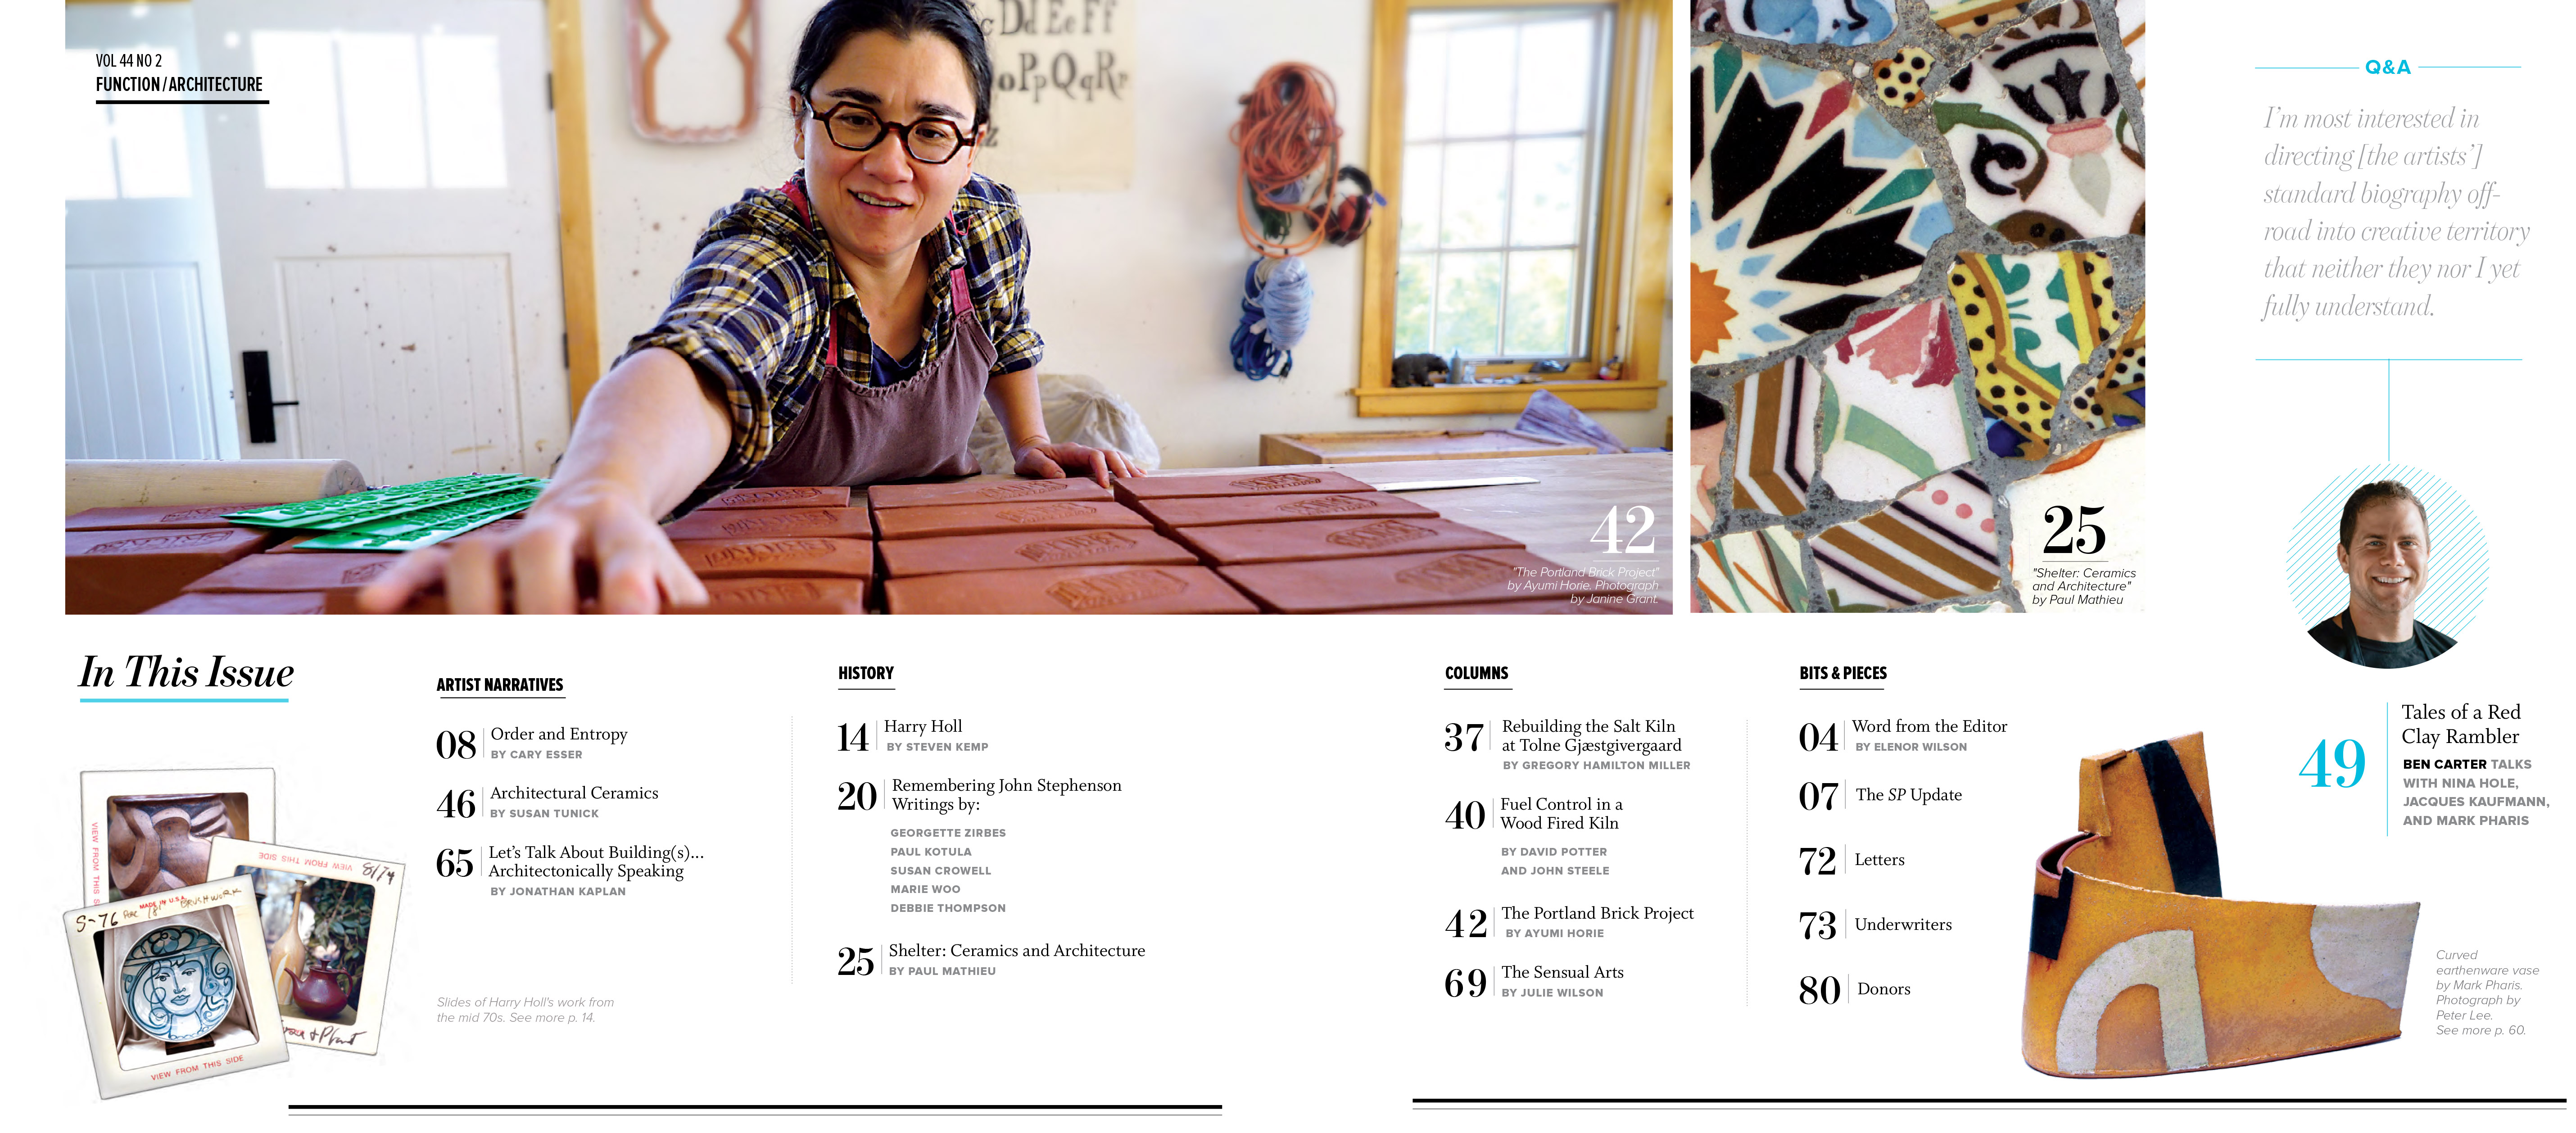 Studio Potter Journal, Vol. 44, No. 2, Function/Architecture, Contents Page